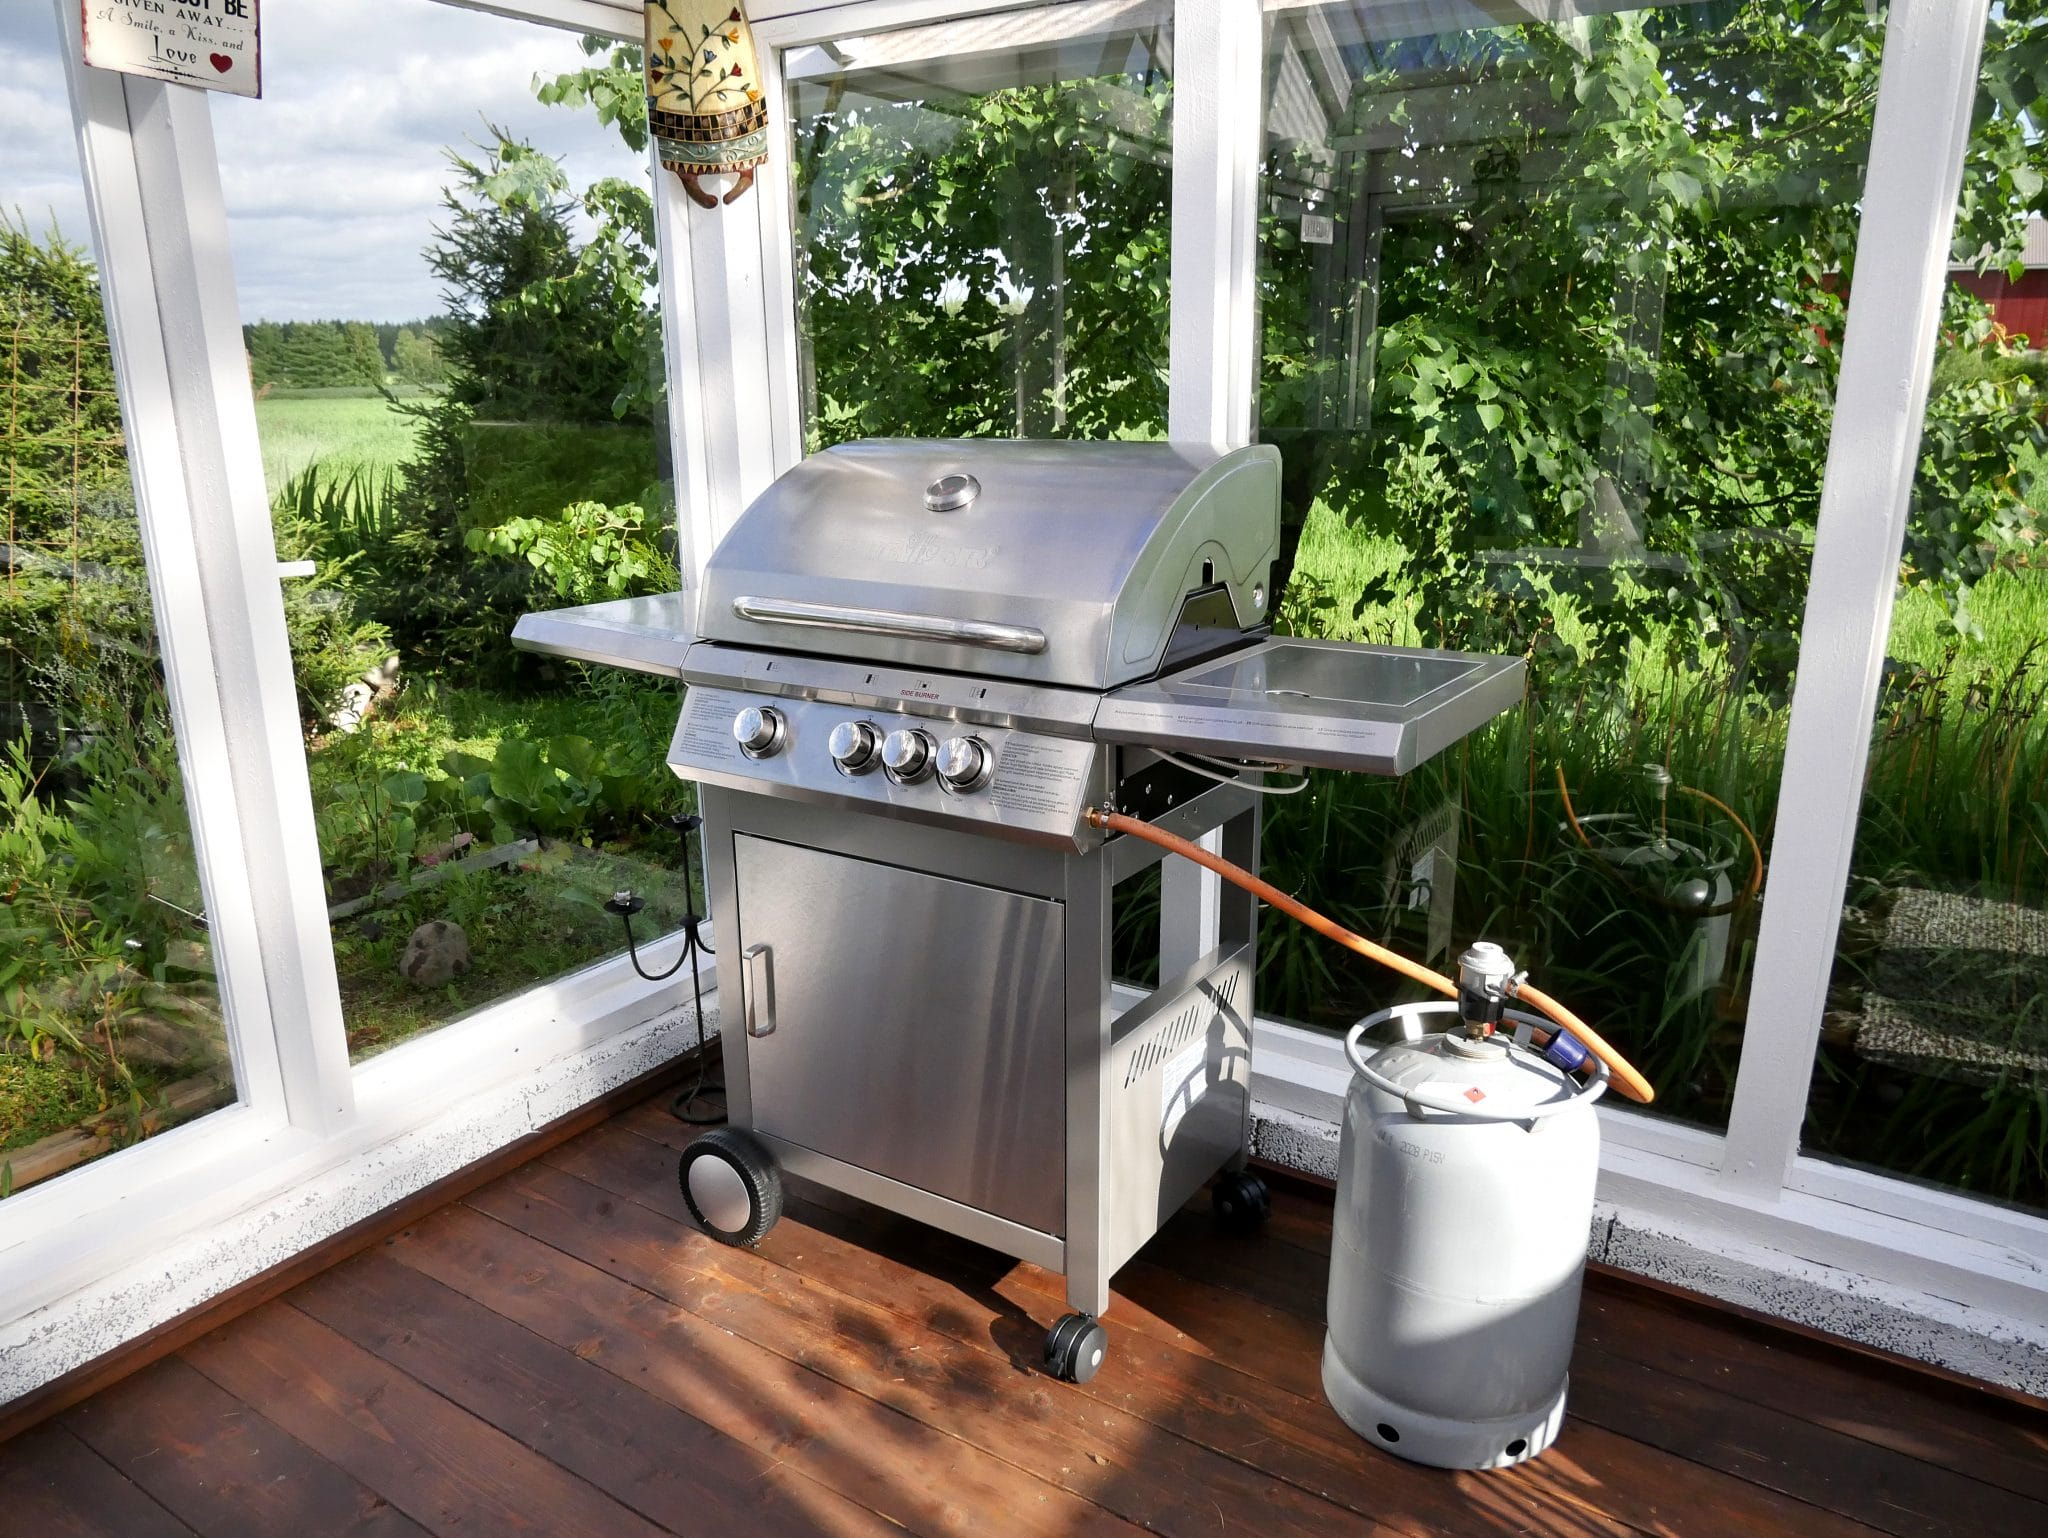 weber e 330 natural gas grill genesis a detailed review. Black Bedroom Furniture Sets. Home Design Ideas